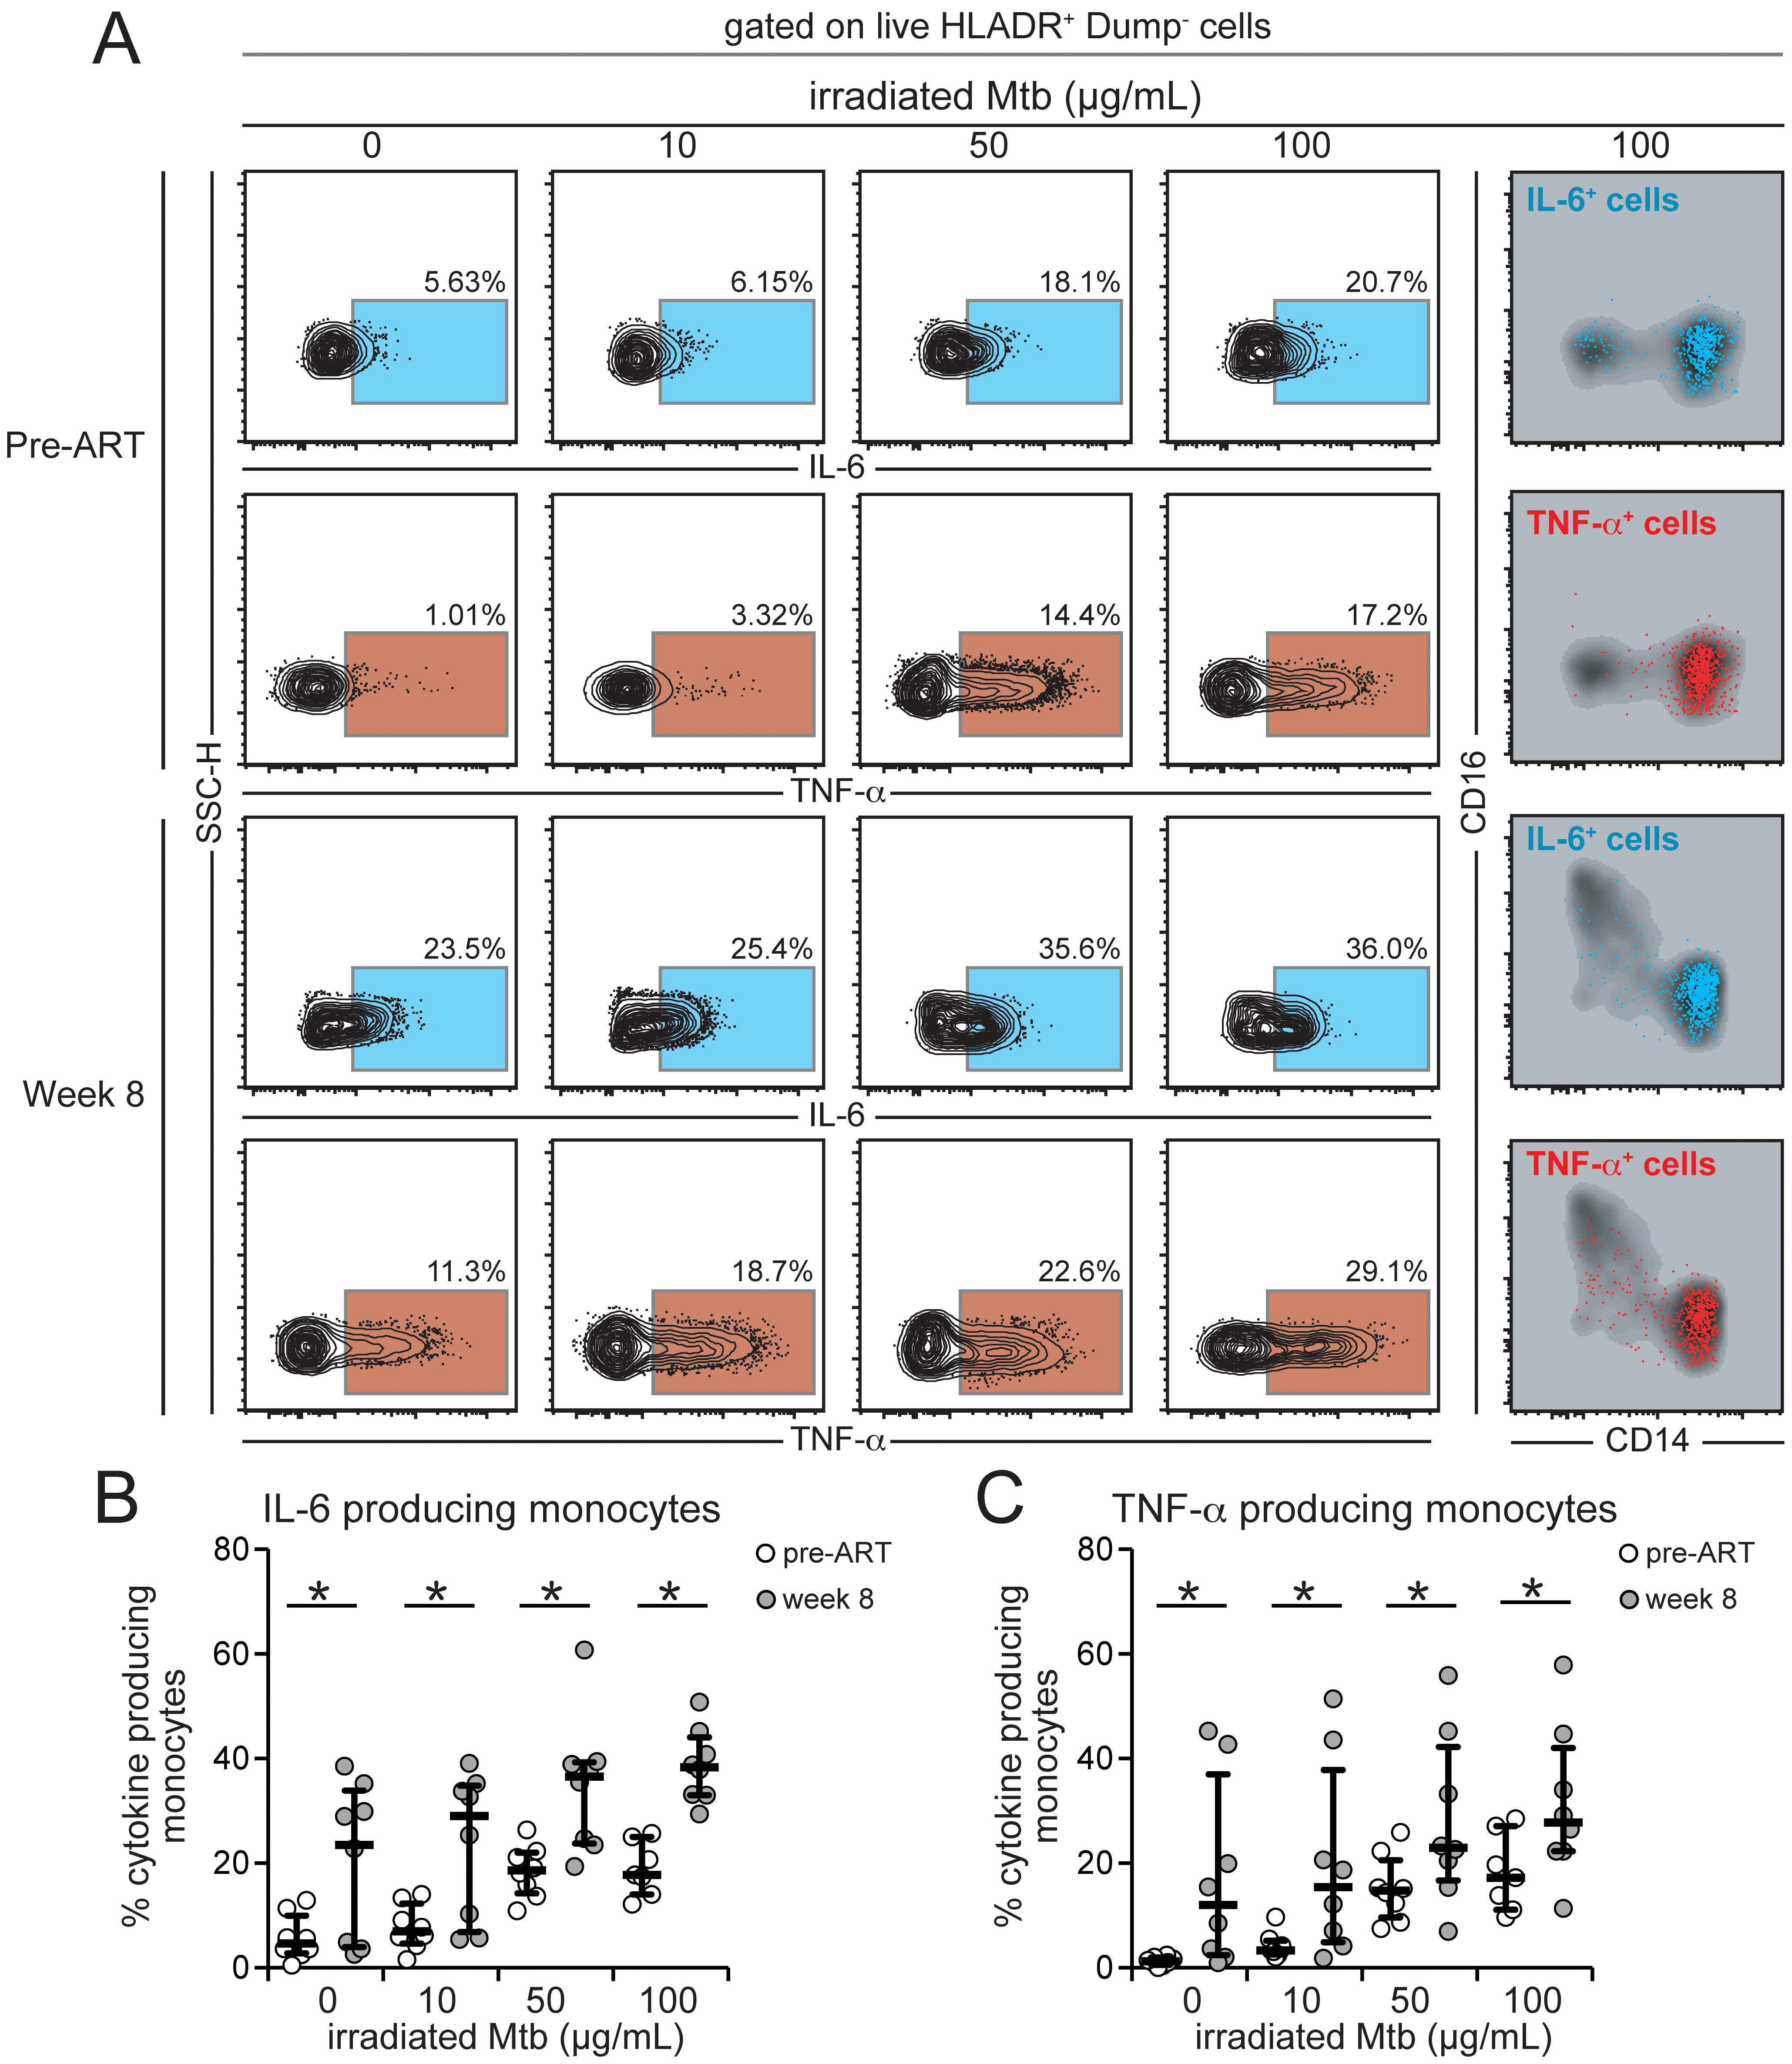 Intracellular production of IL-6 and TNF-α by monocytes from HIV+ patients is affected by HIV plasma viremia and mycobacterial antigen load.